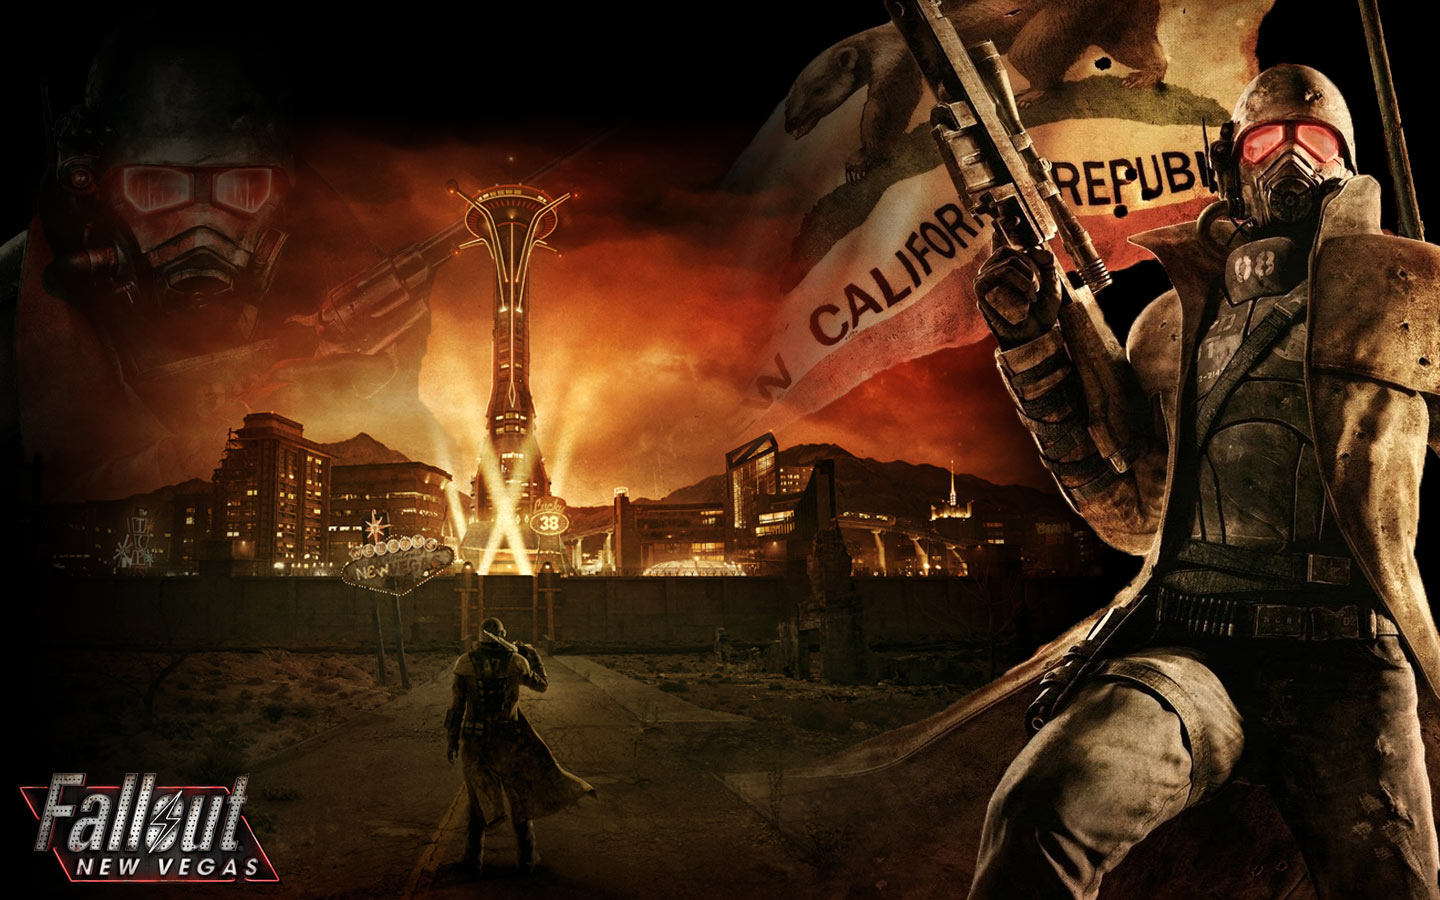 41 Fallout New Vegas Wallpaper Widescreen On Wallpapersafari